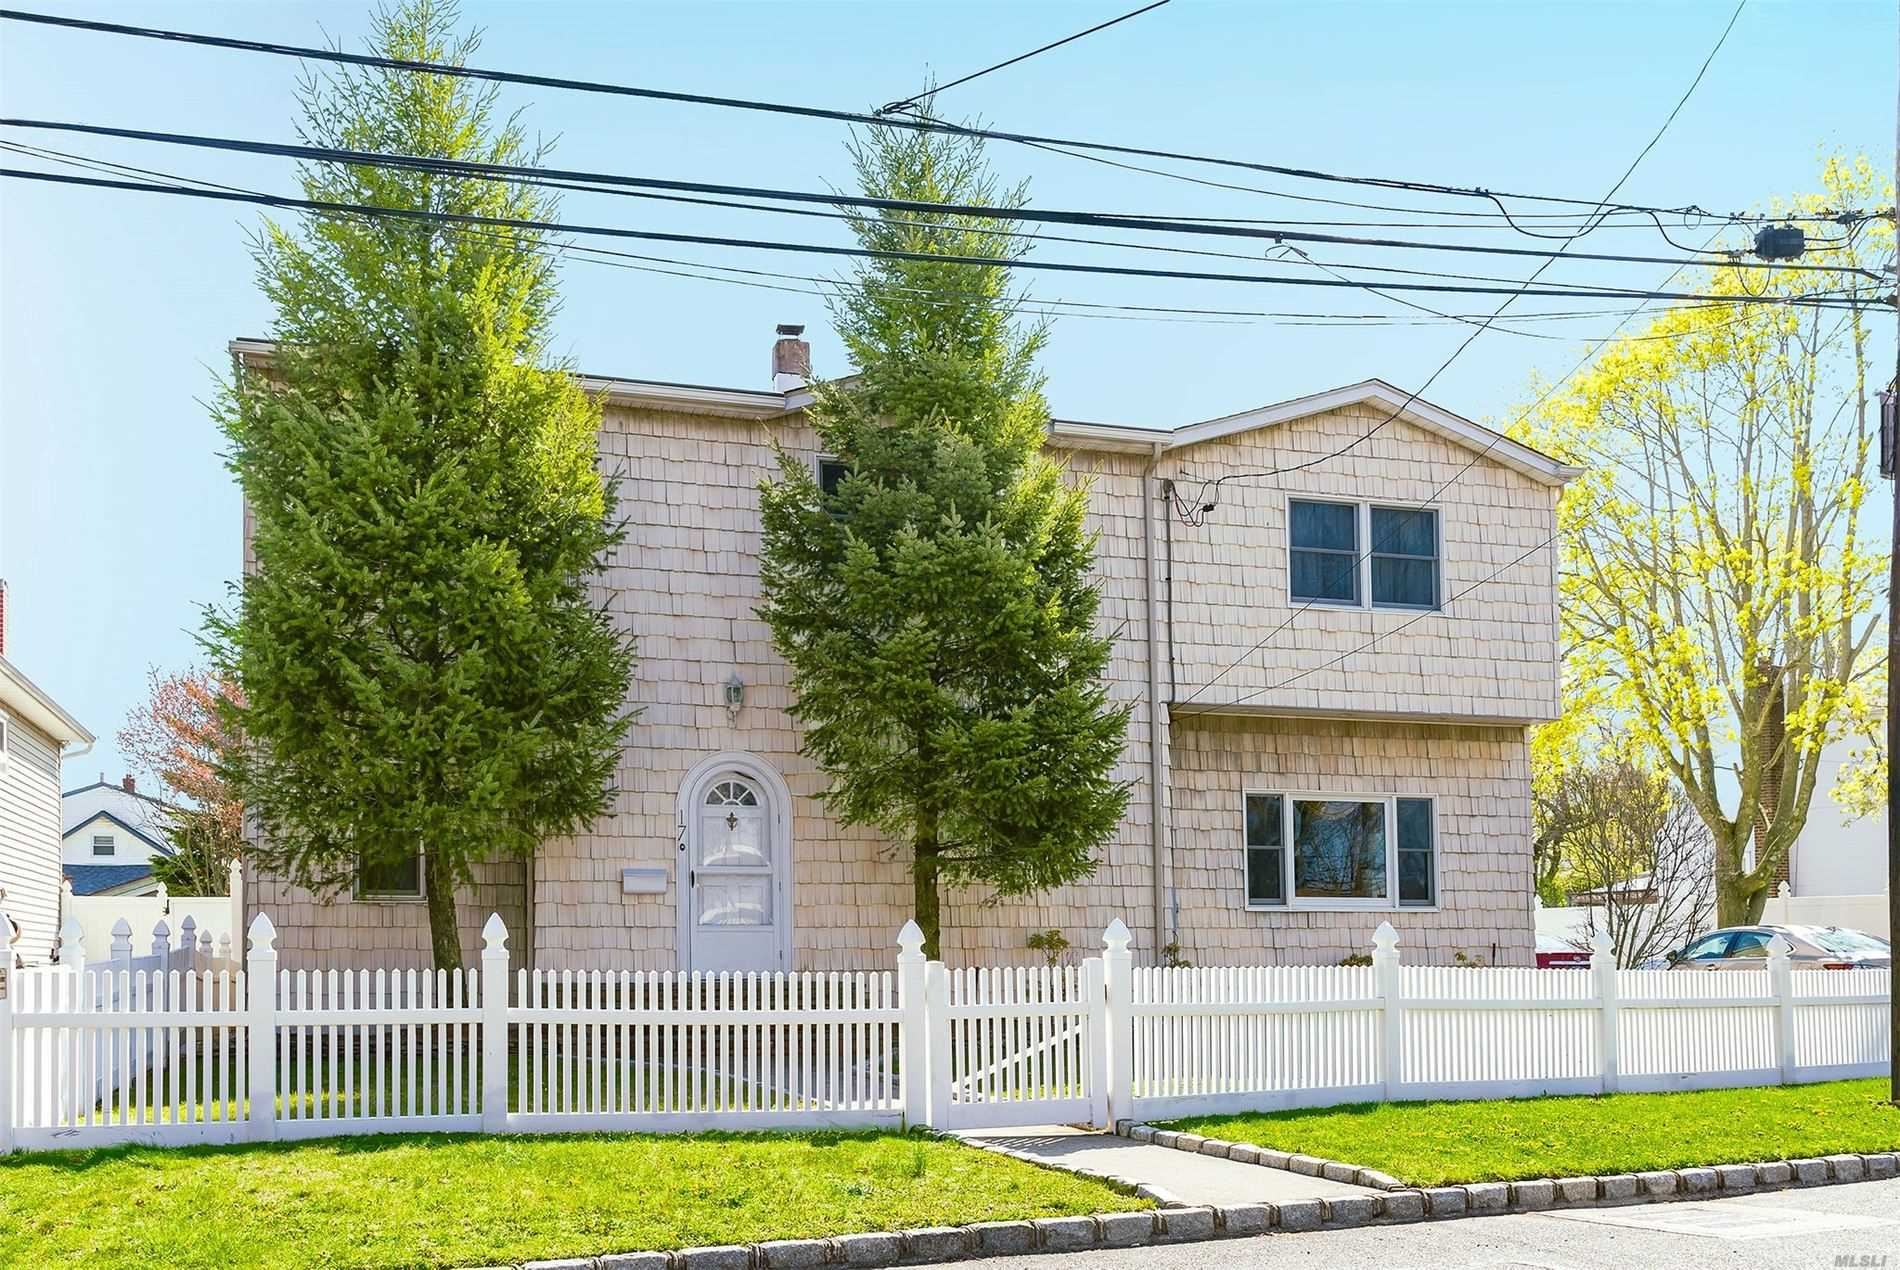 17 Woodridge Ct, West Babylon, NY 11704 - MLS#: 3213377